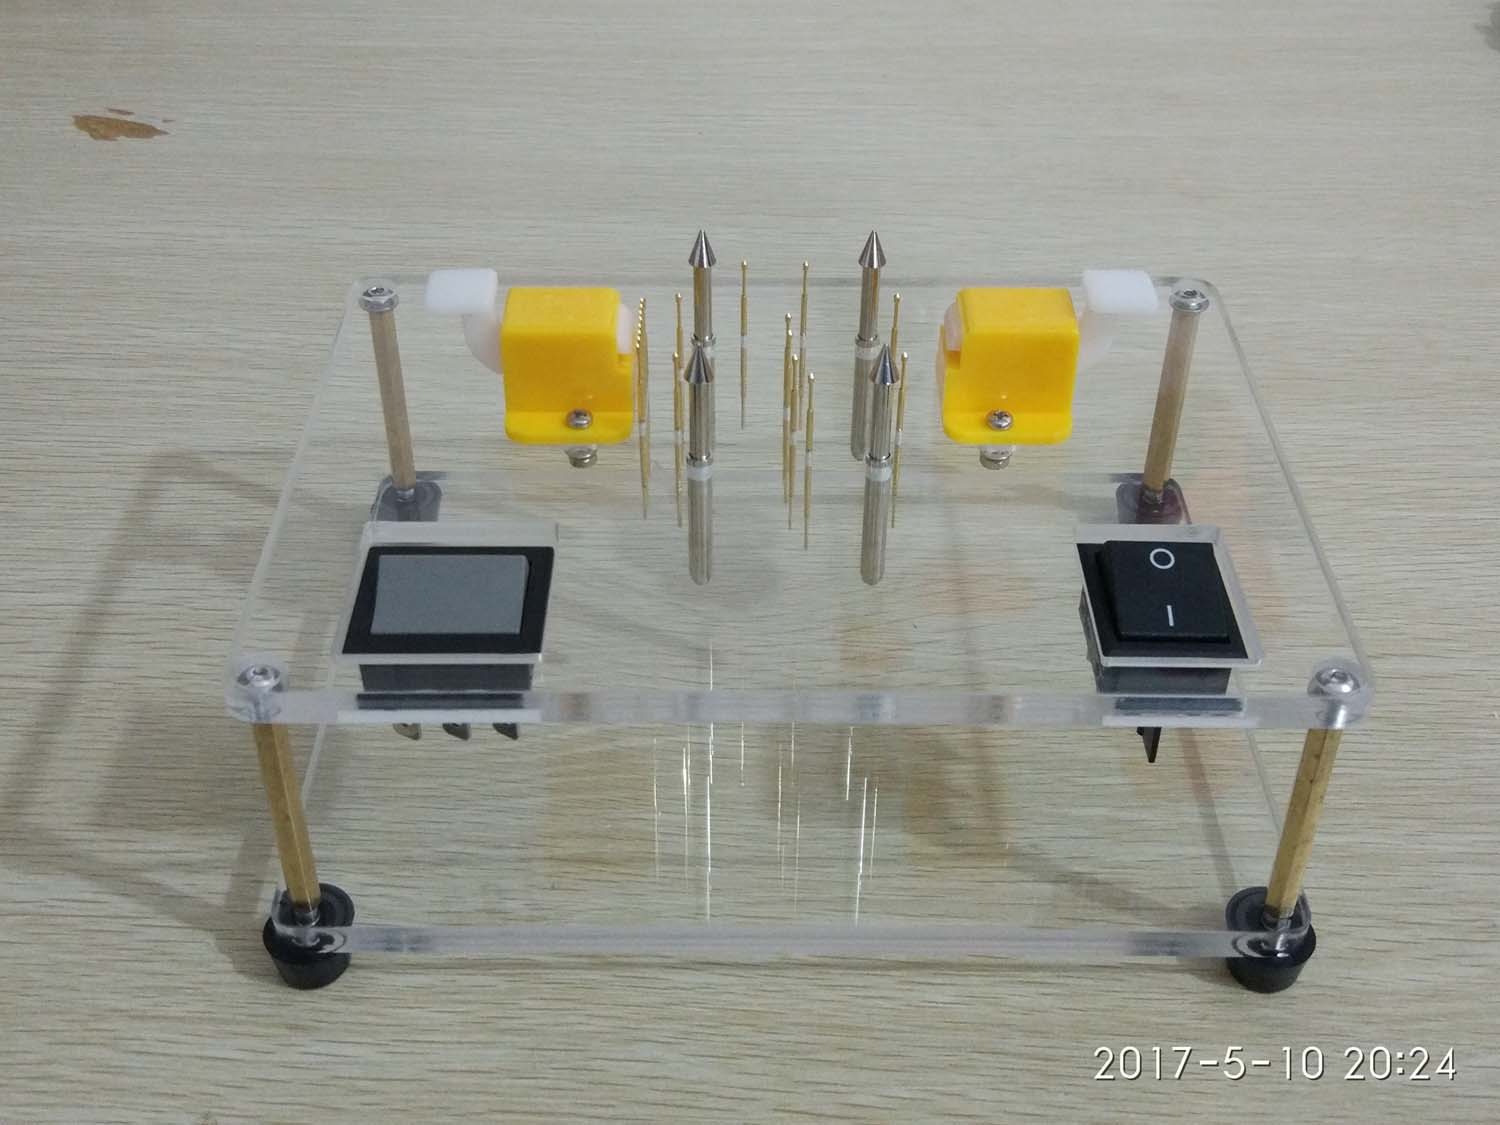 Function Test of Fixture and Fixture for PCBA Test FixtureFunction Test of Fixture and Fixture for PCBA Test Fixture